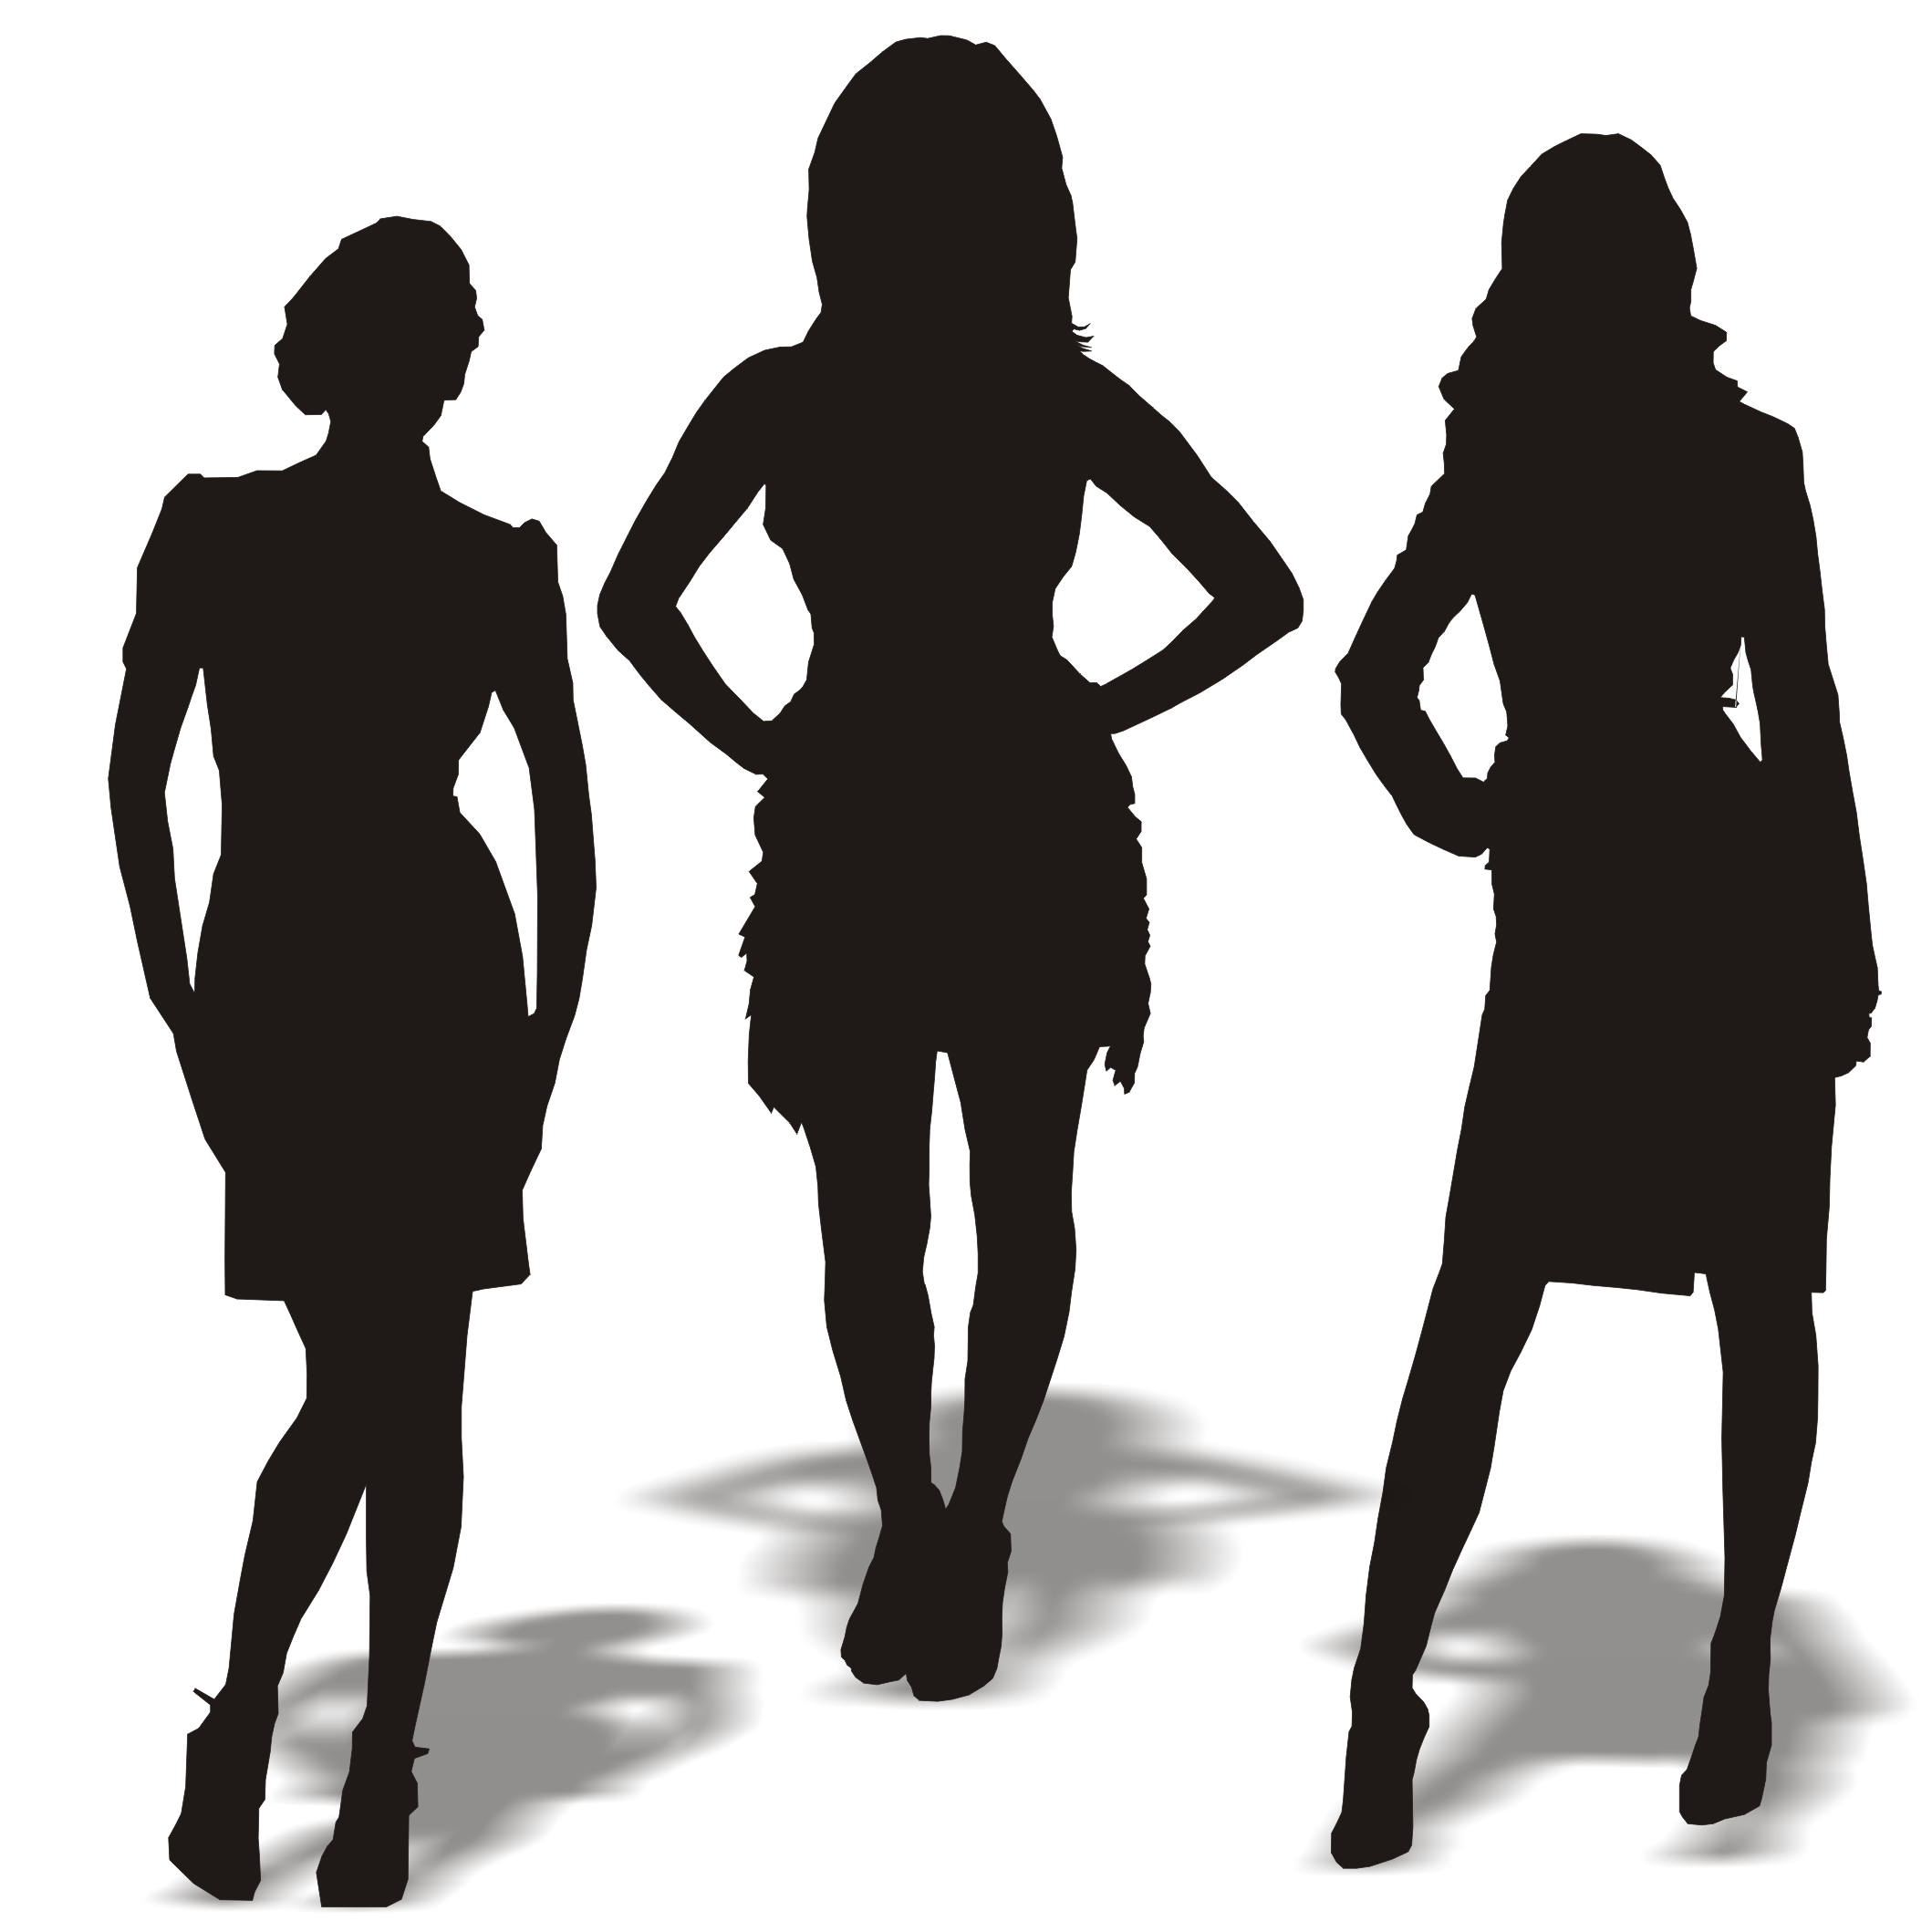 Silhouette Of A Woman - ClipArt Best